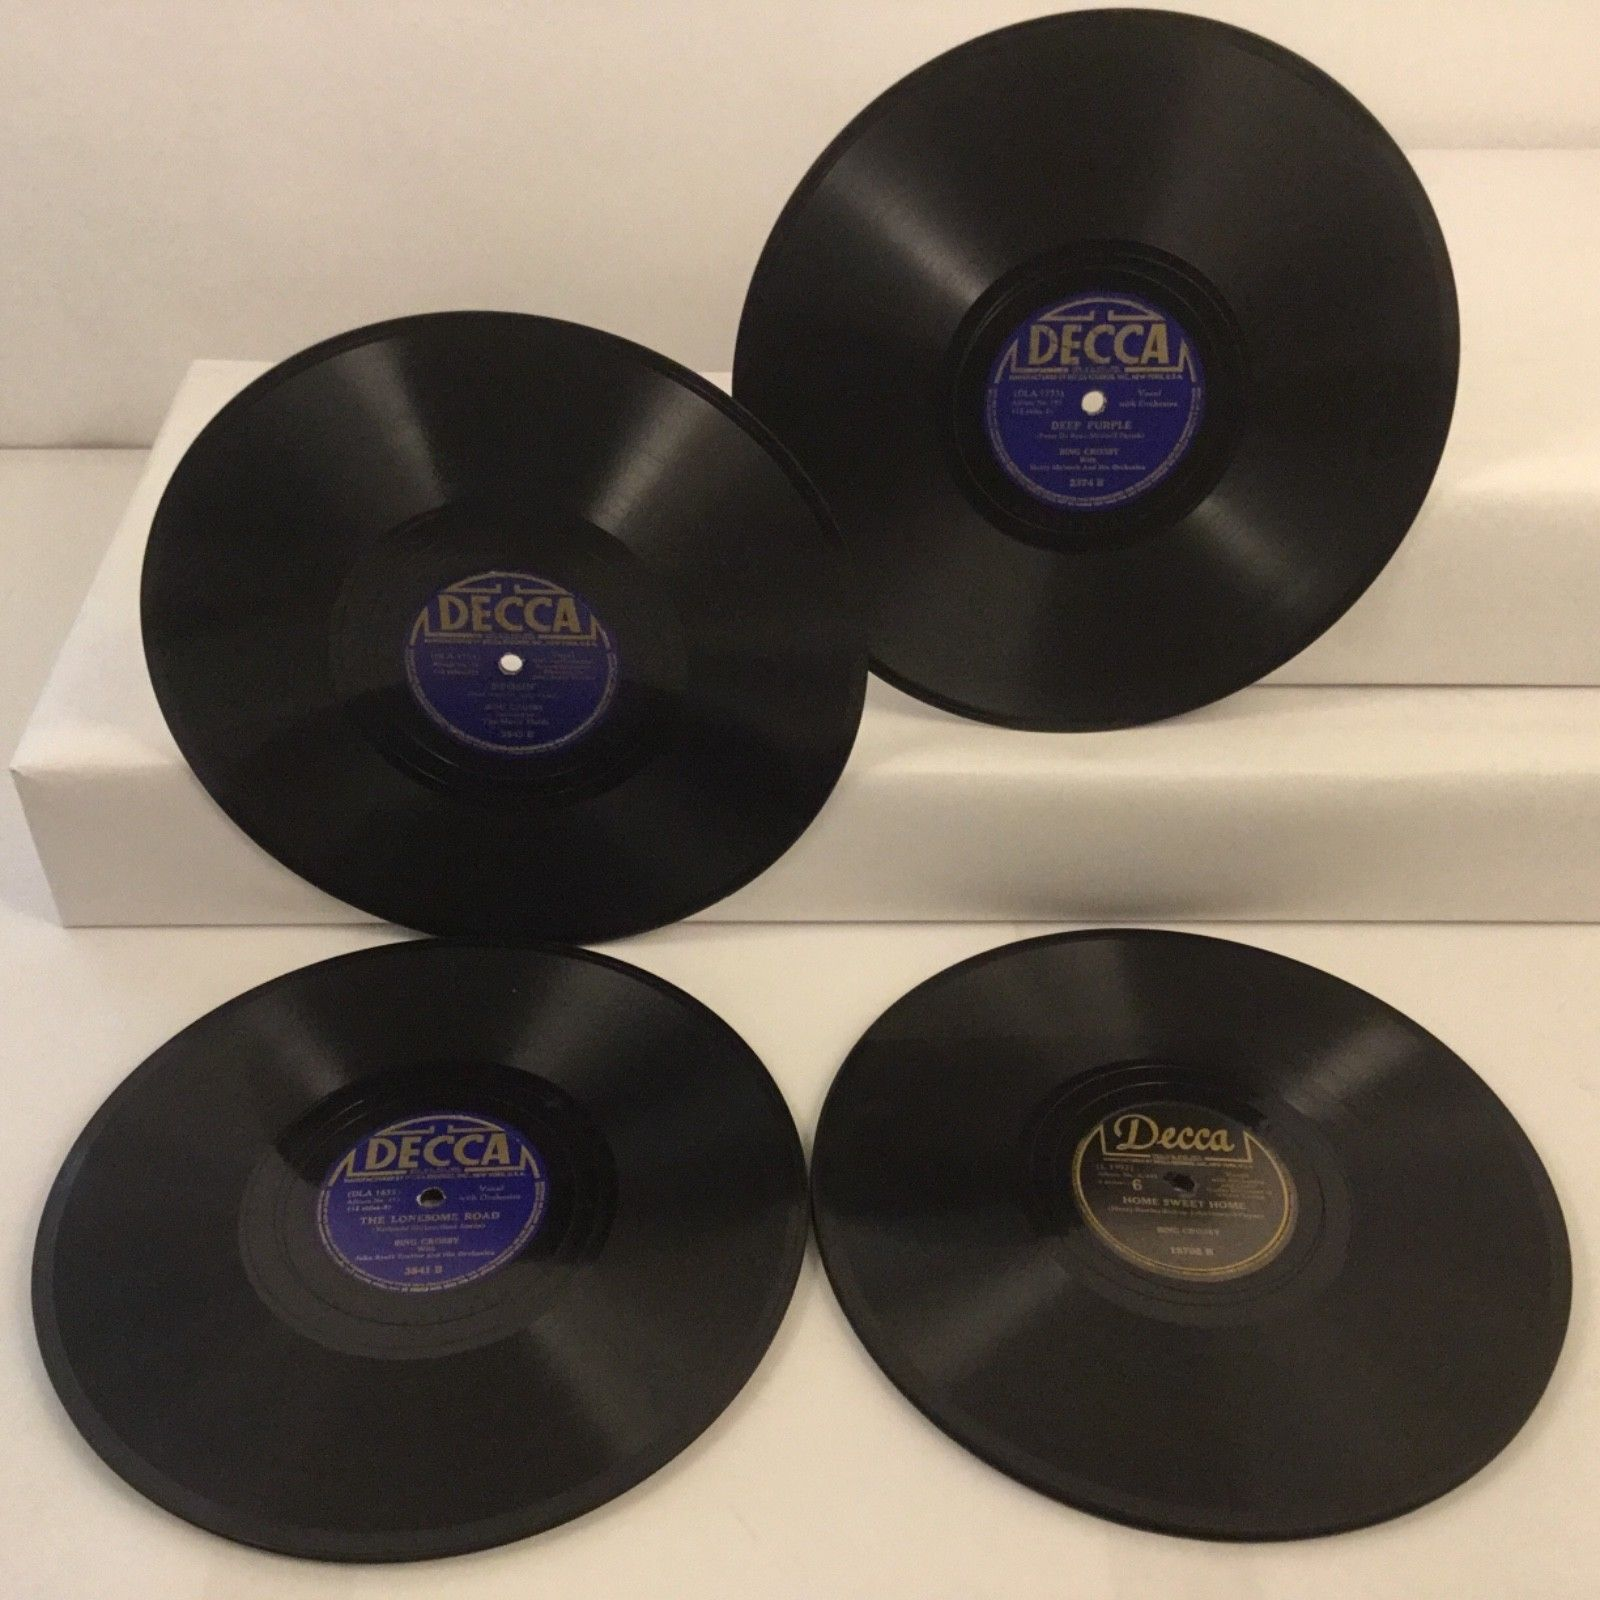 Bing Crosby 78 Rpm 10 Decca Record Collection Of 8 Shellac Records Bing Crosby Records 78 Rpm